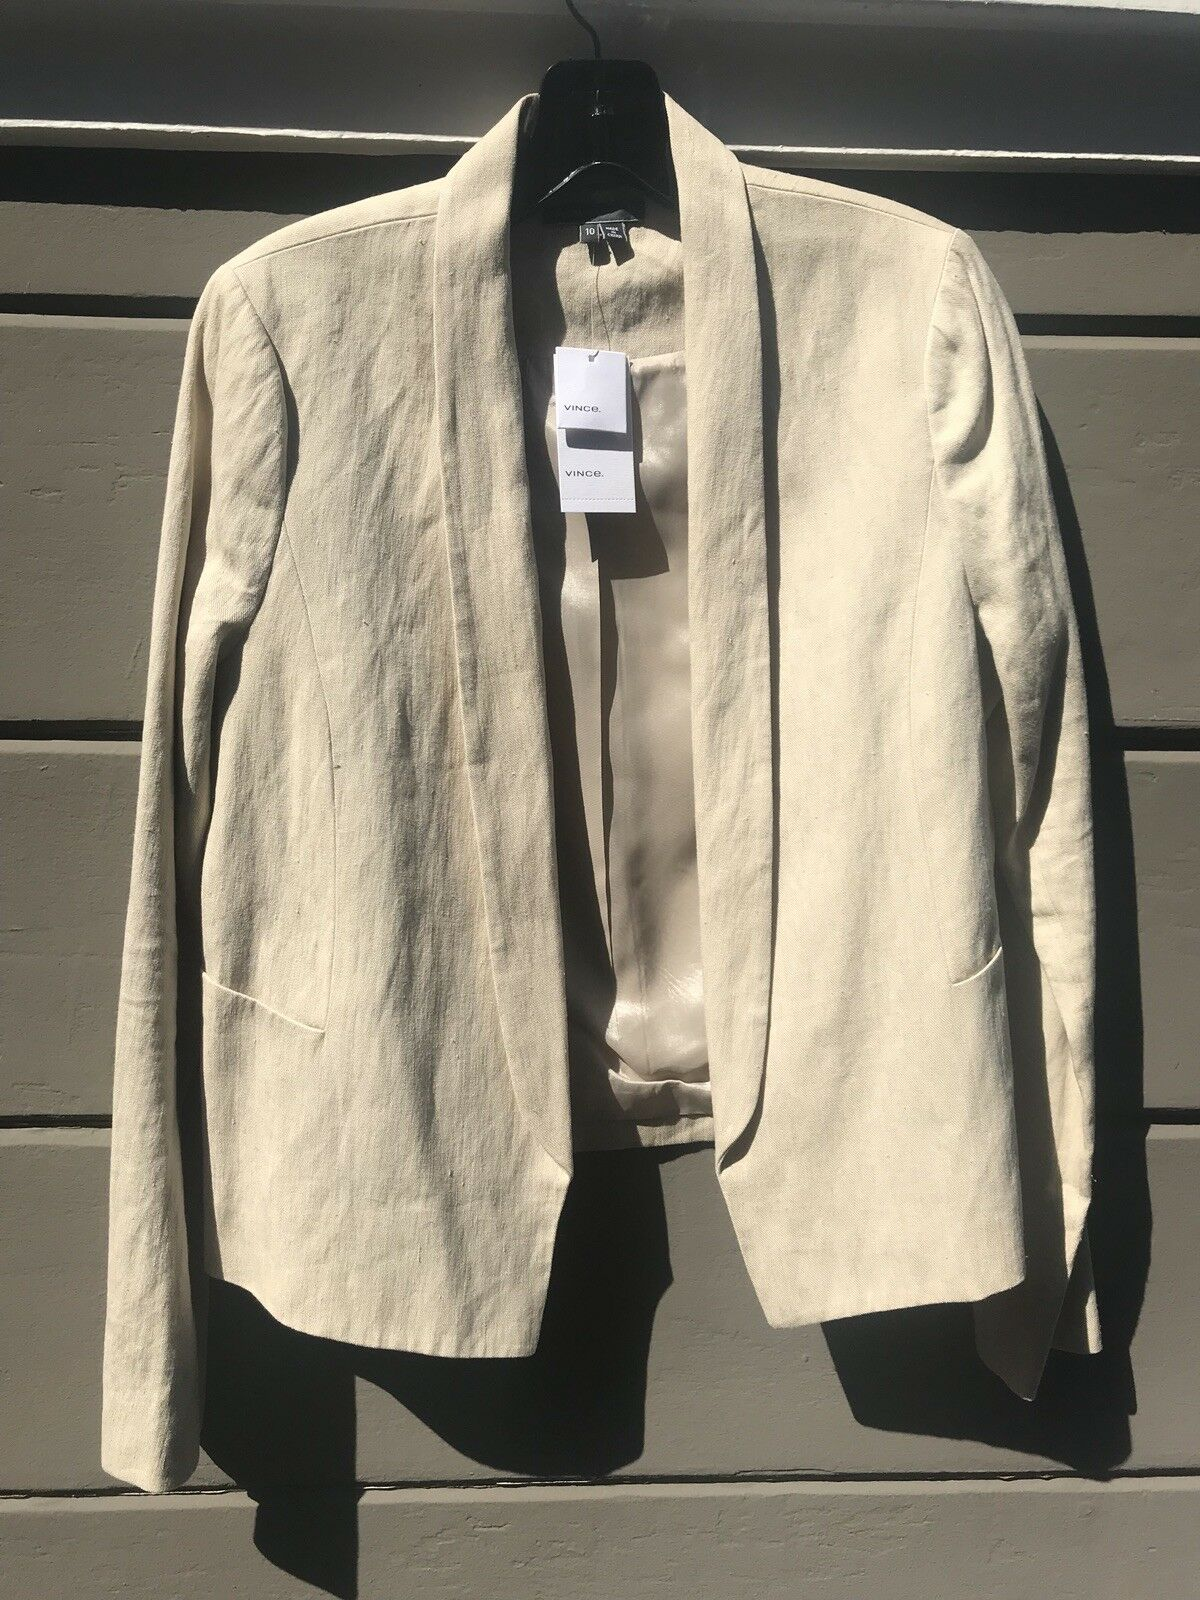 NWT Vince open blazer in neutral khaki - Size 10